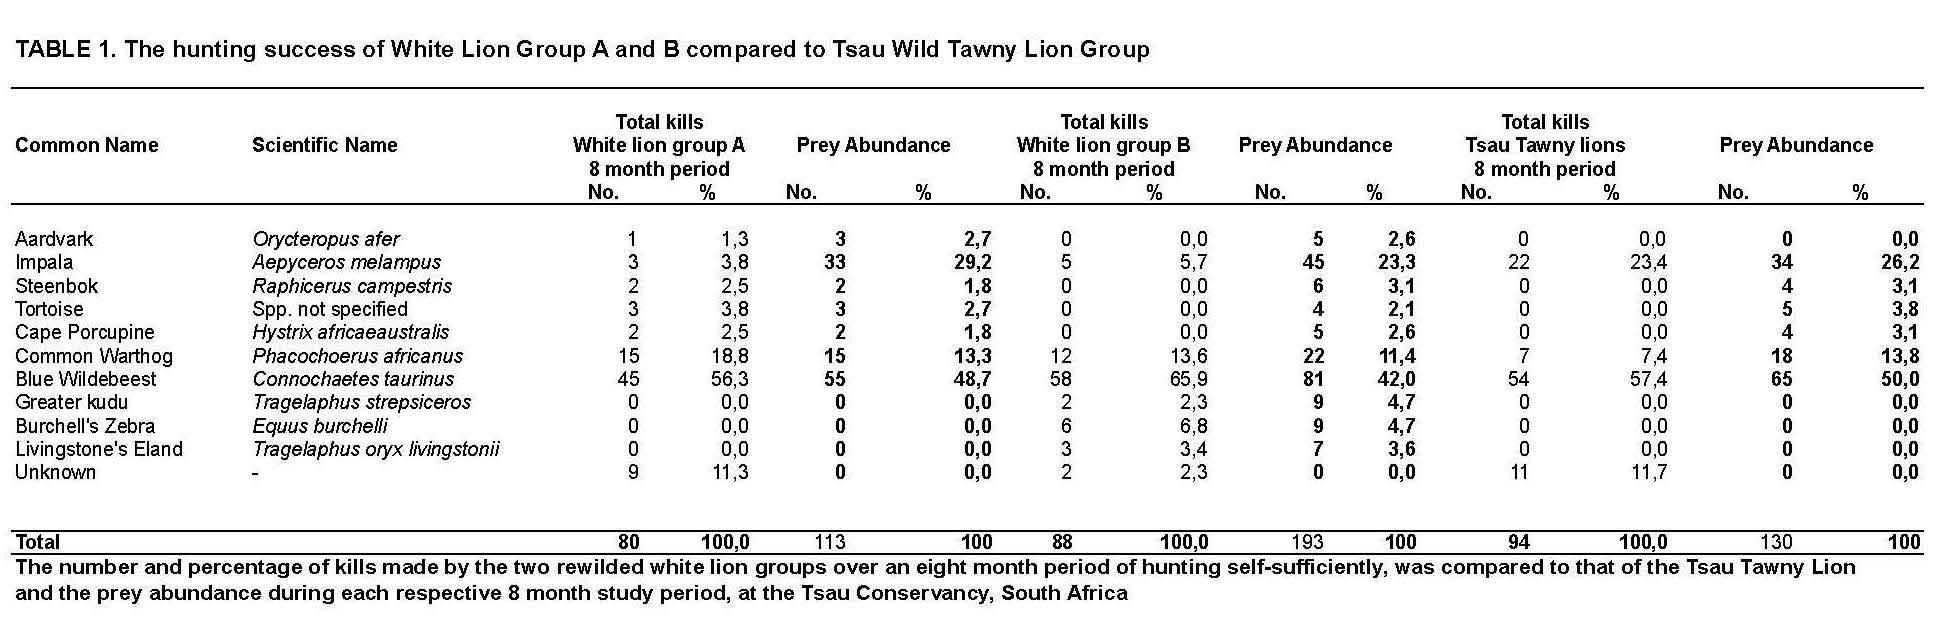 The hunting success of White Lion Group A and B compared to Tsau Wild Tawny Lion Group